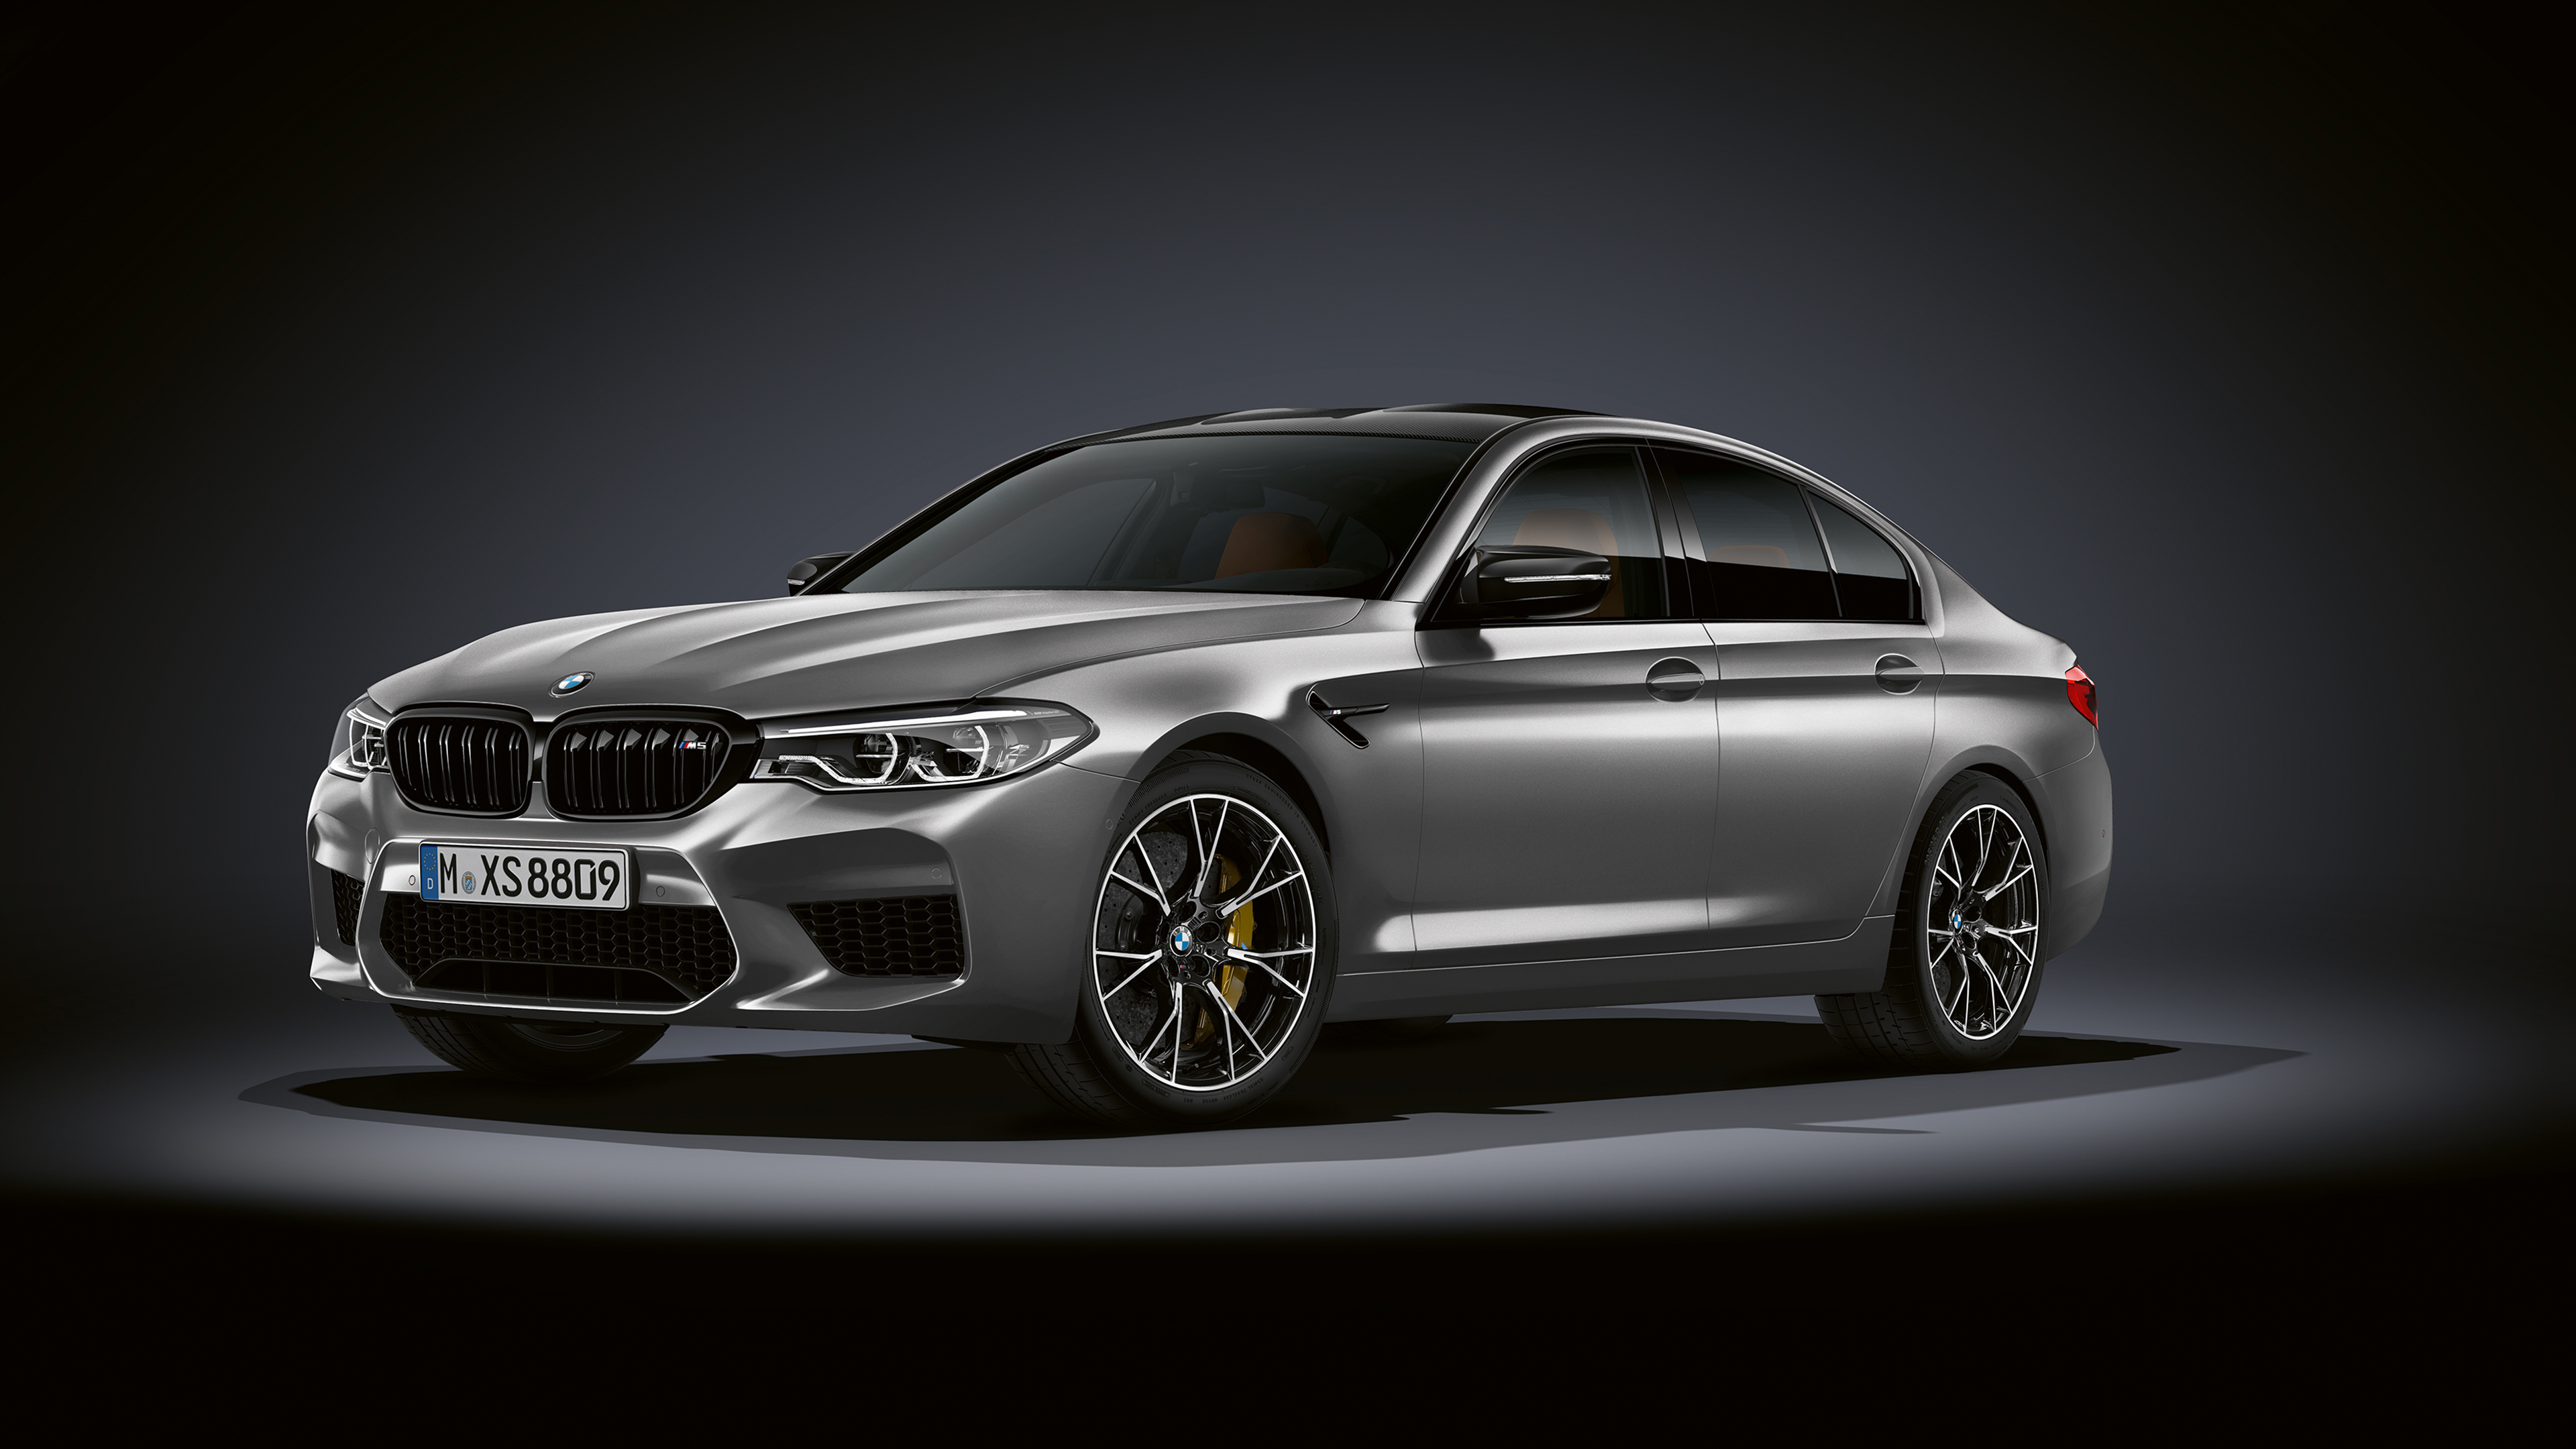 2018 BMW M5 Competition 4K 2 Wallpaper | HD Car Wallpapers ...